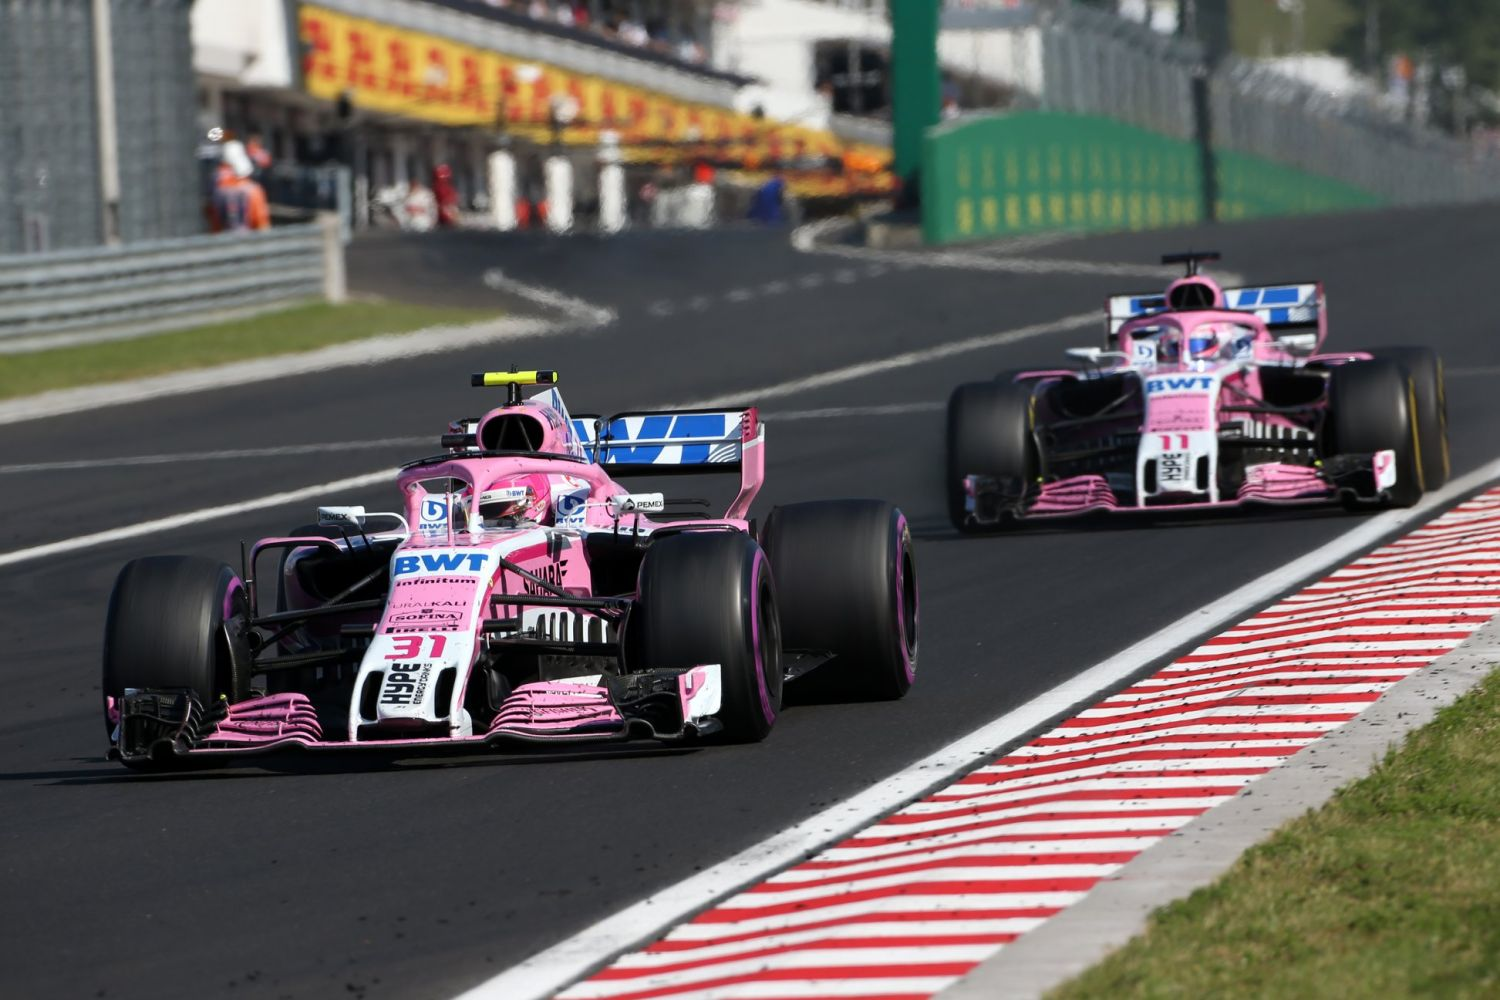 © Force India - L'équipe s'appellera désormais Racing Point F1 Team